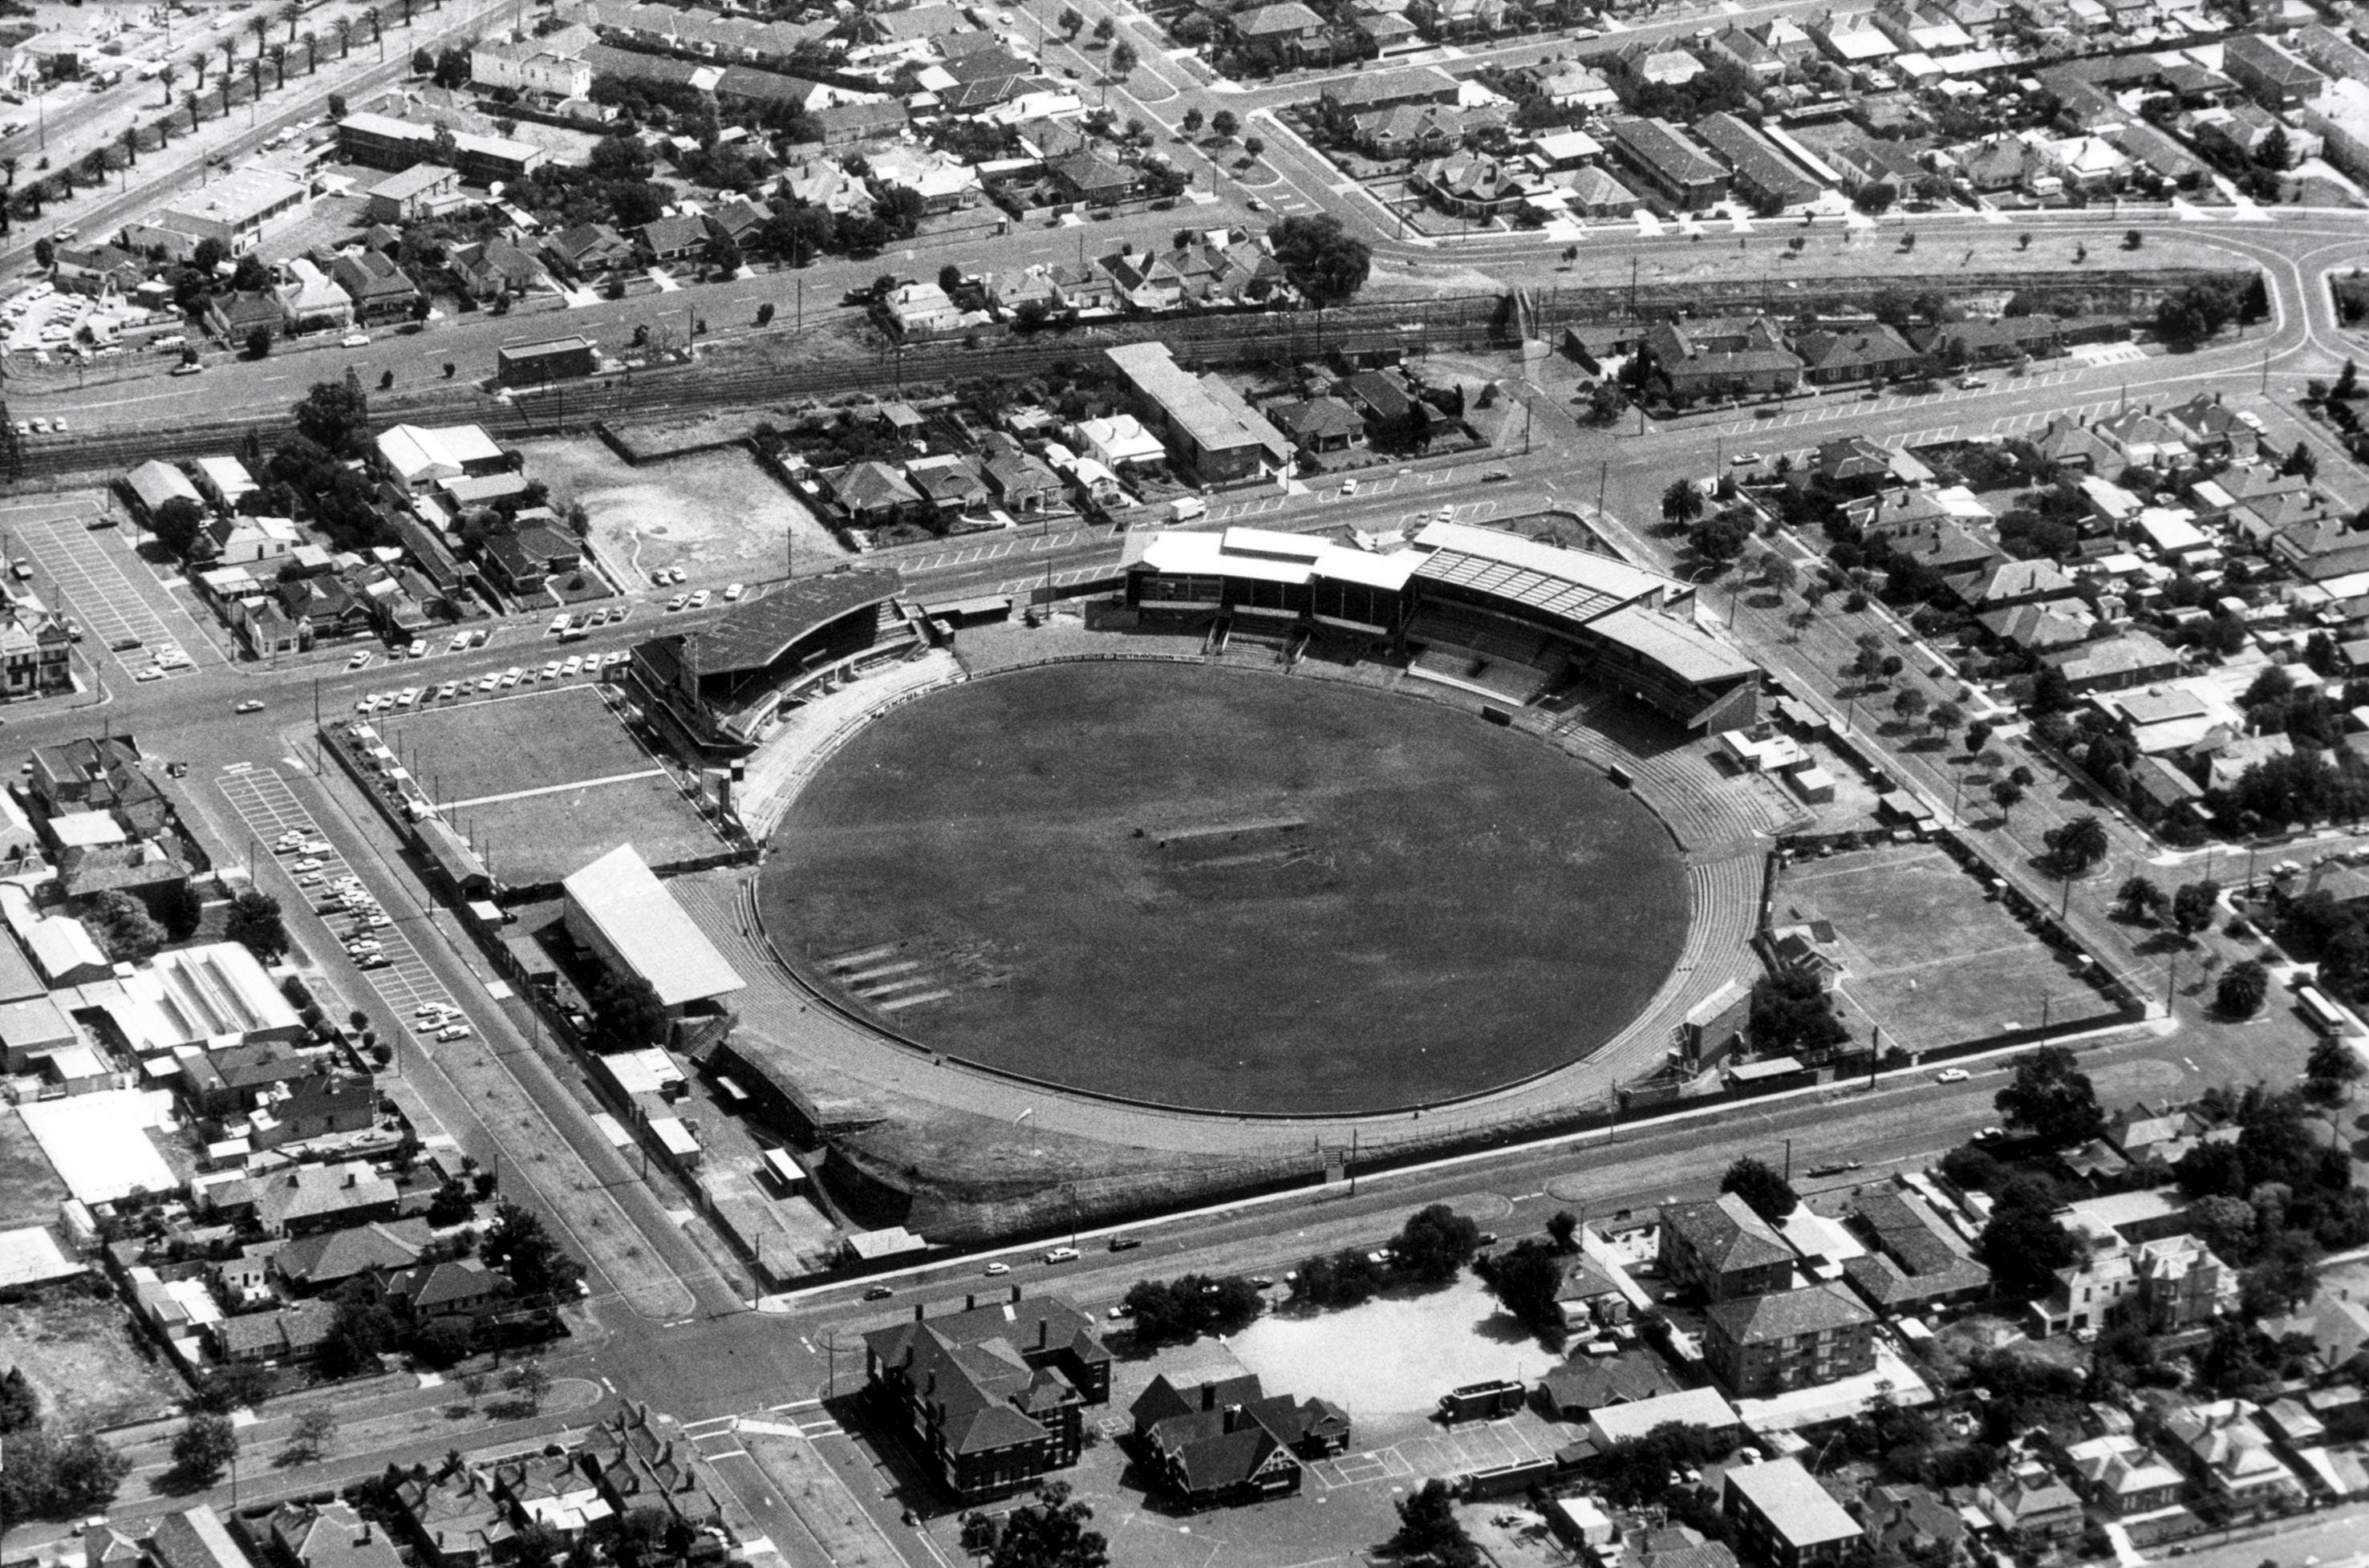 1975 aerial image of Windy Hill, courtesy of The Age archives